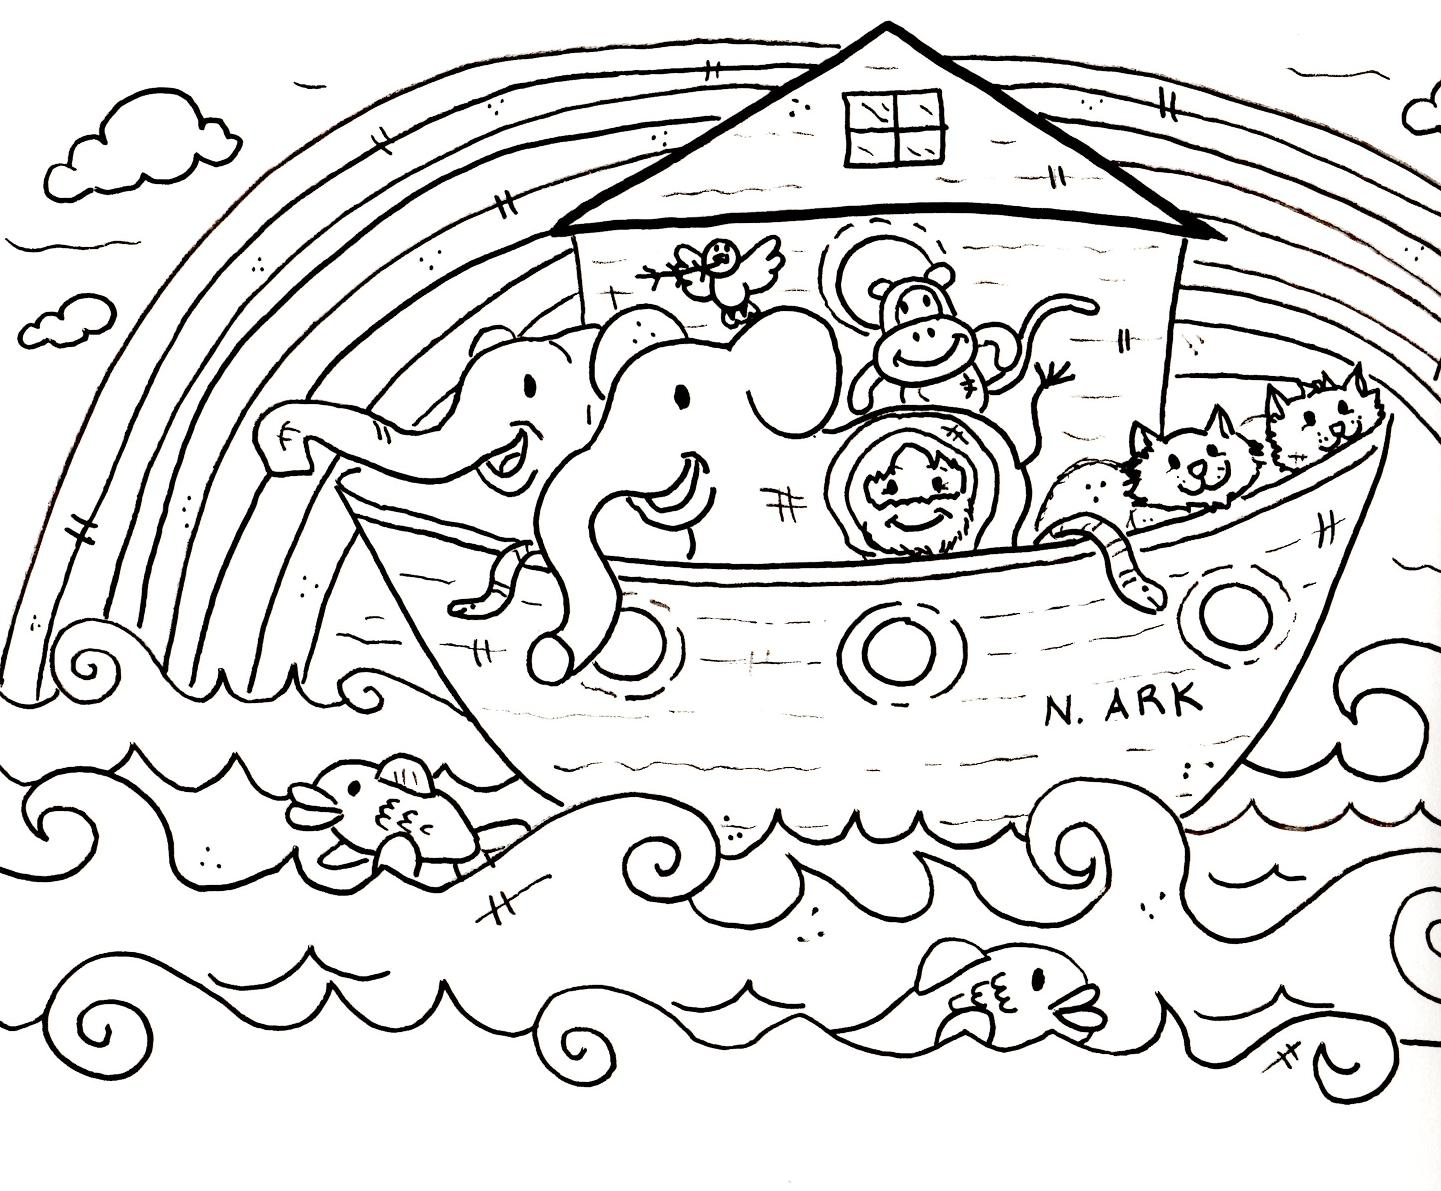 Noah ark coloring pages to download and print for free for Noah s ark printable coloring pages